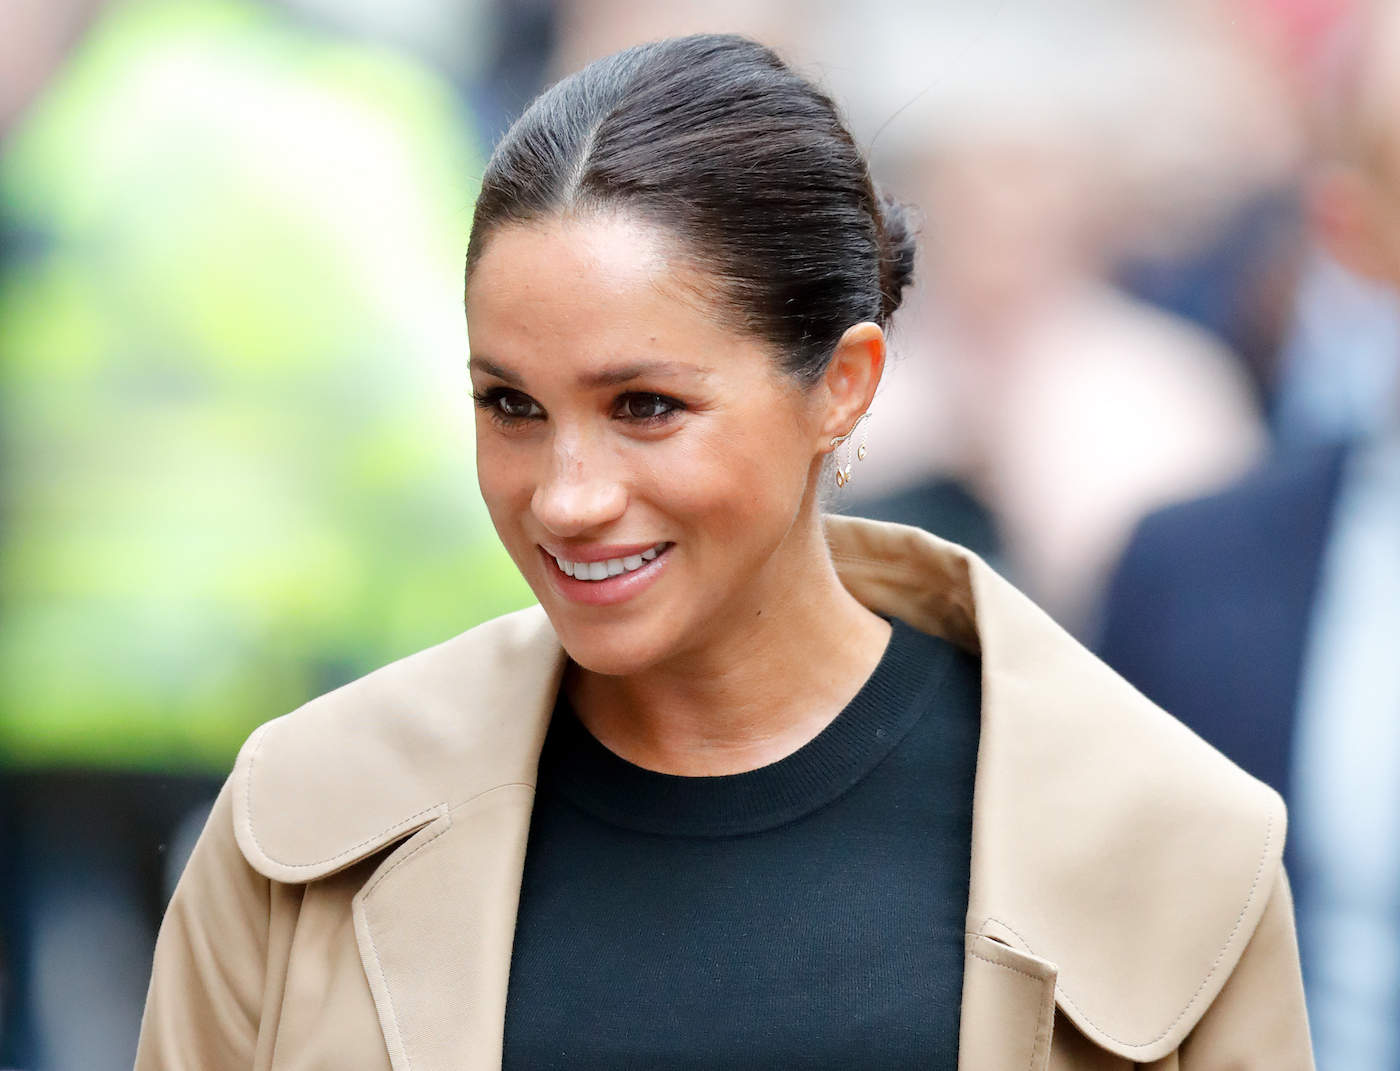 Meghan Markle Likes These $8 Cleansing Cloths So Much That She Bought Them in Bulk